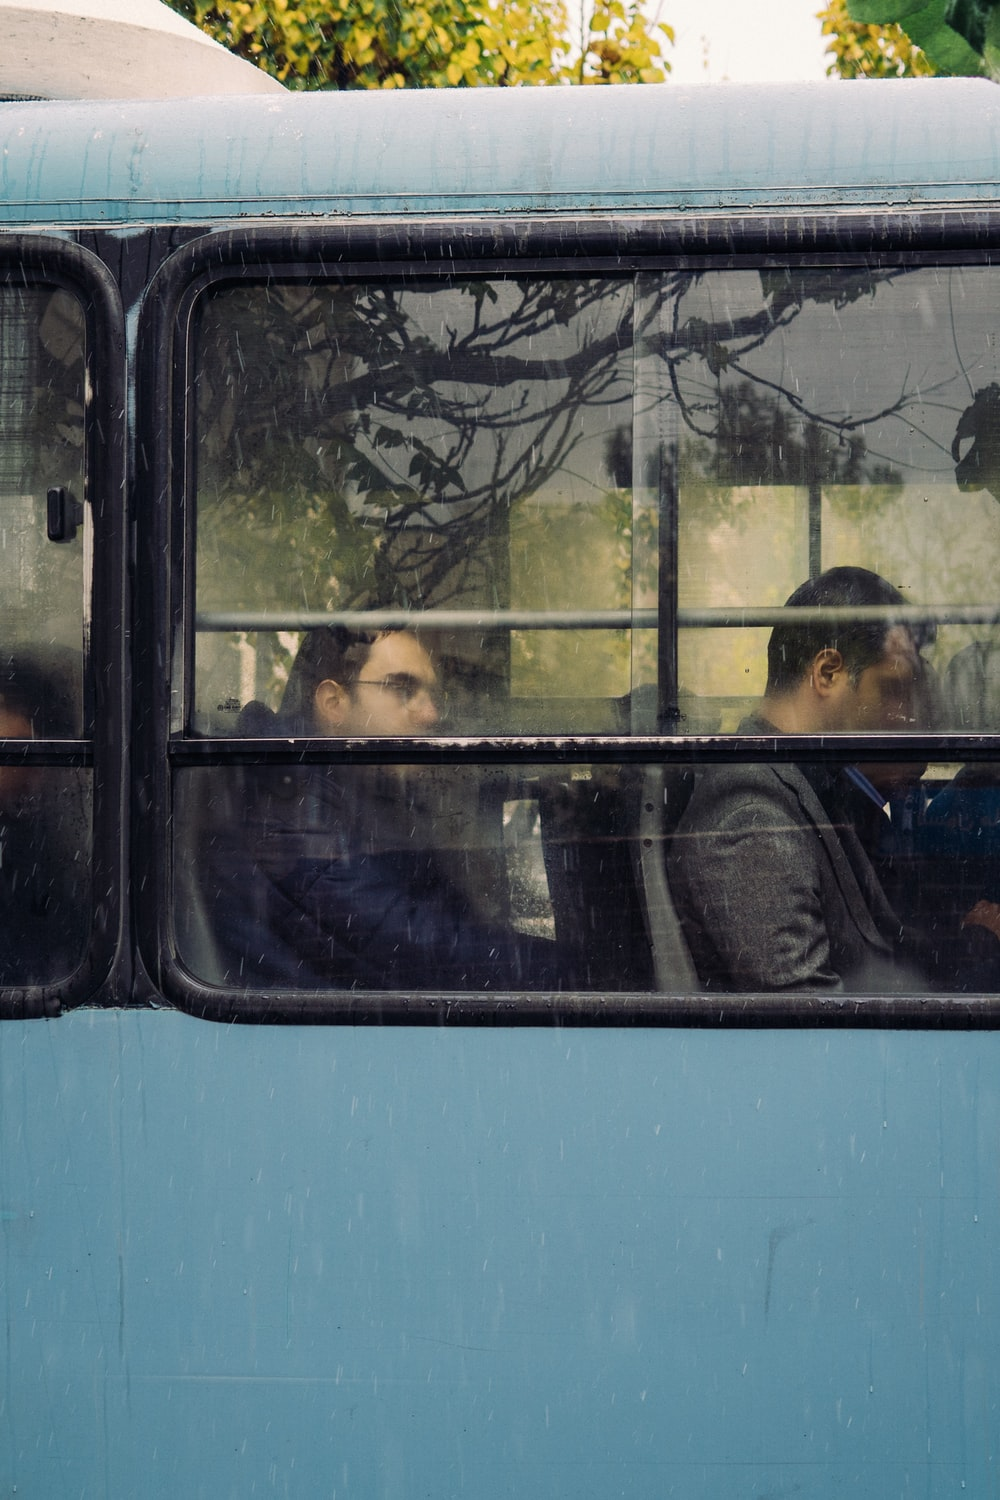 people sitting in blue bus during daytime